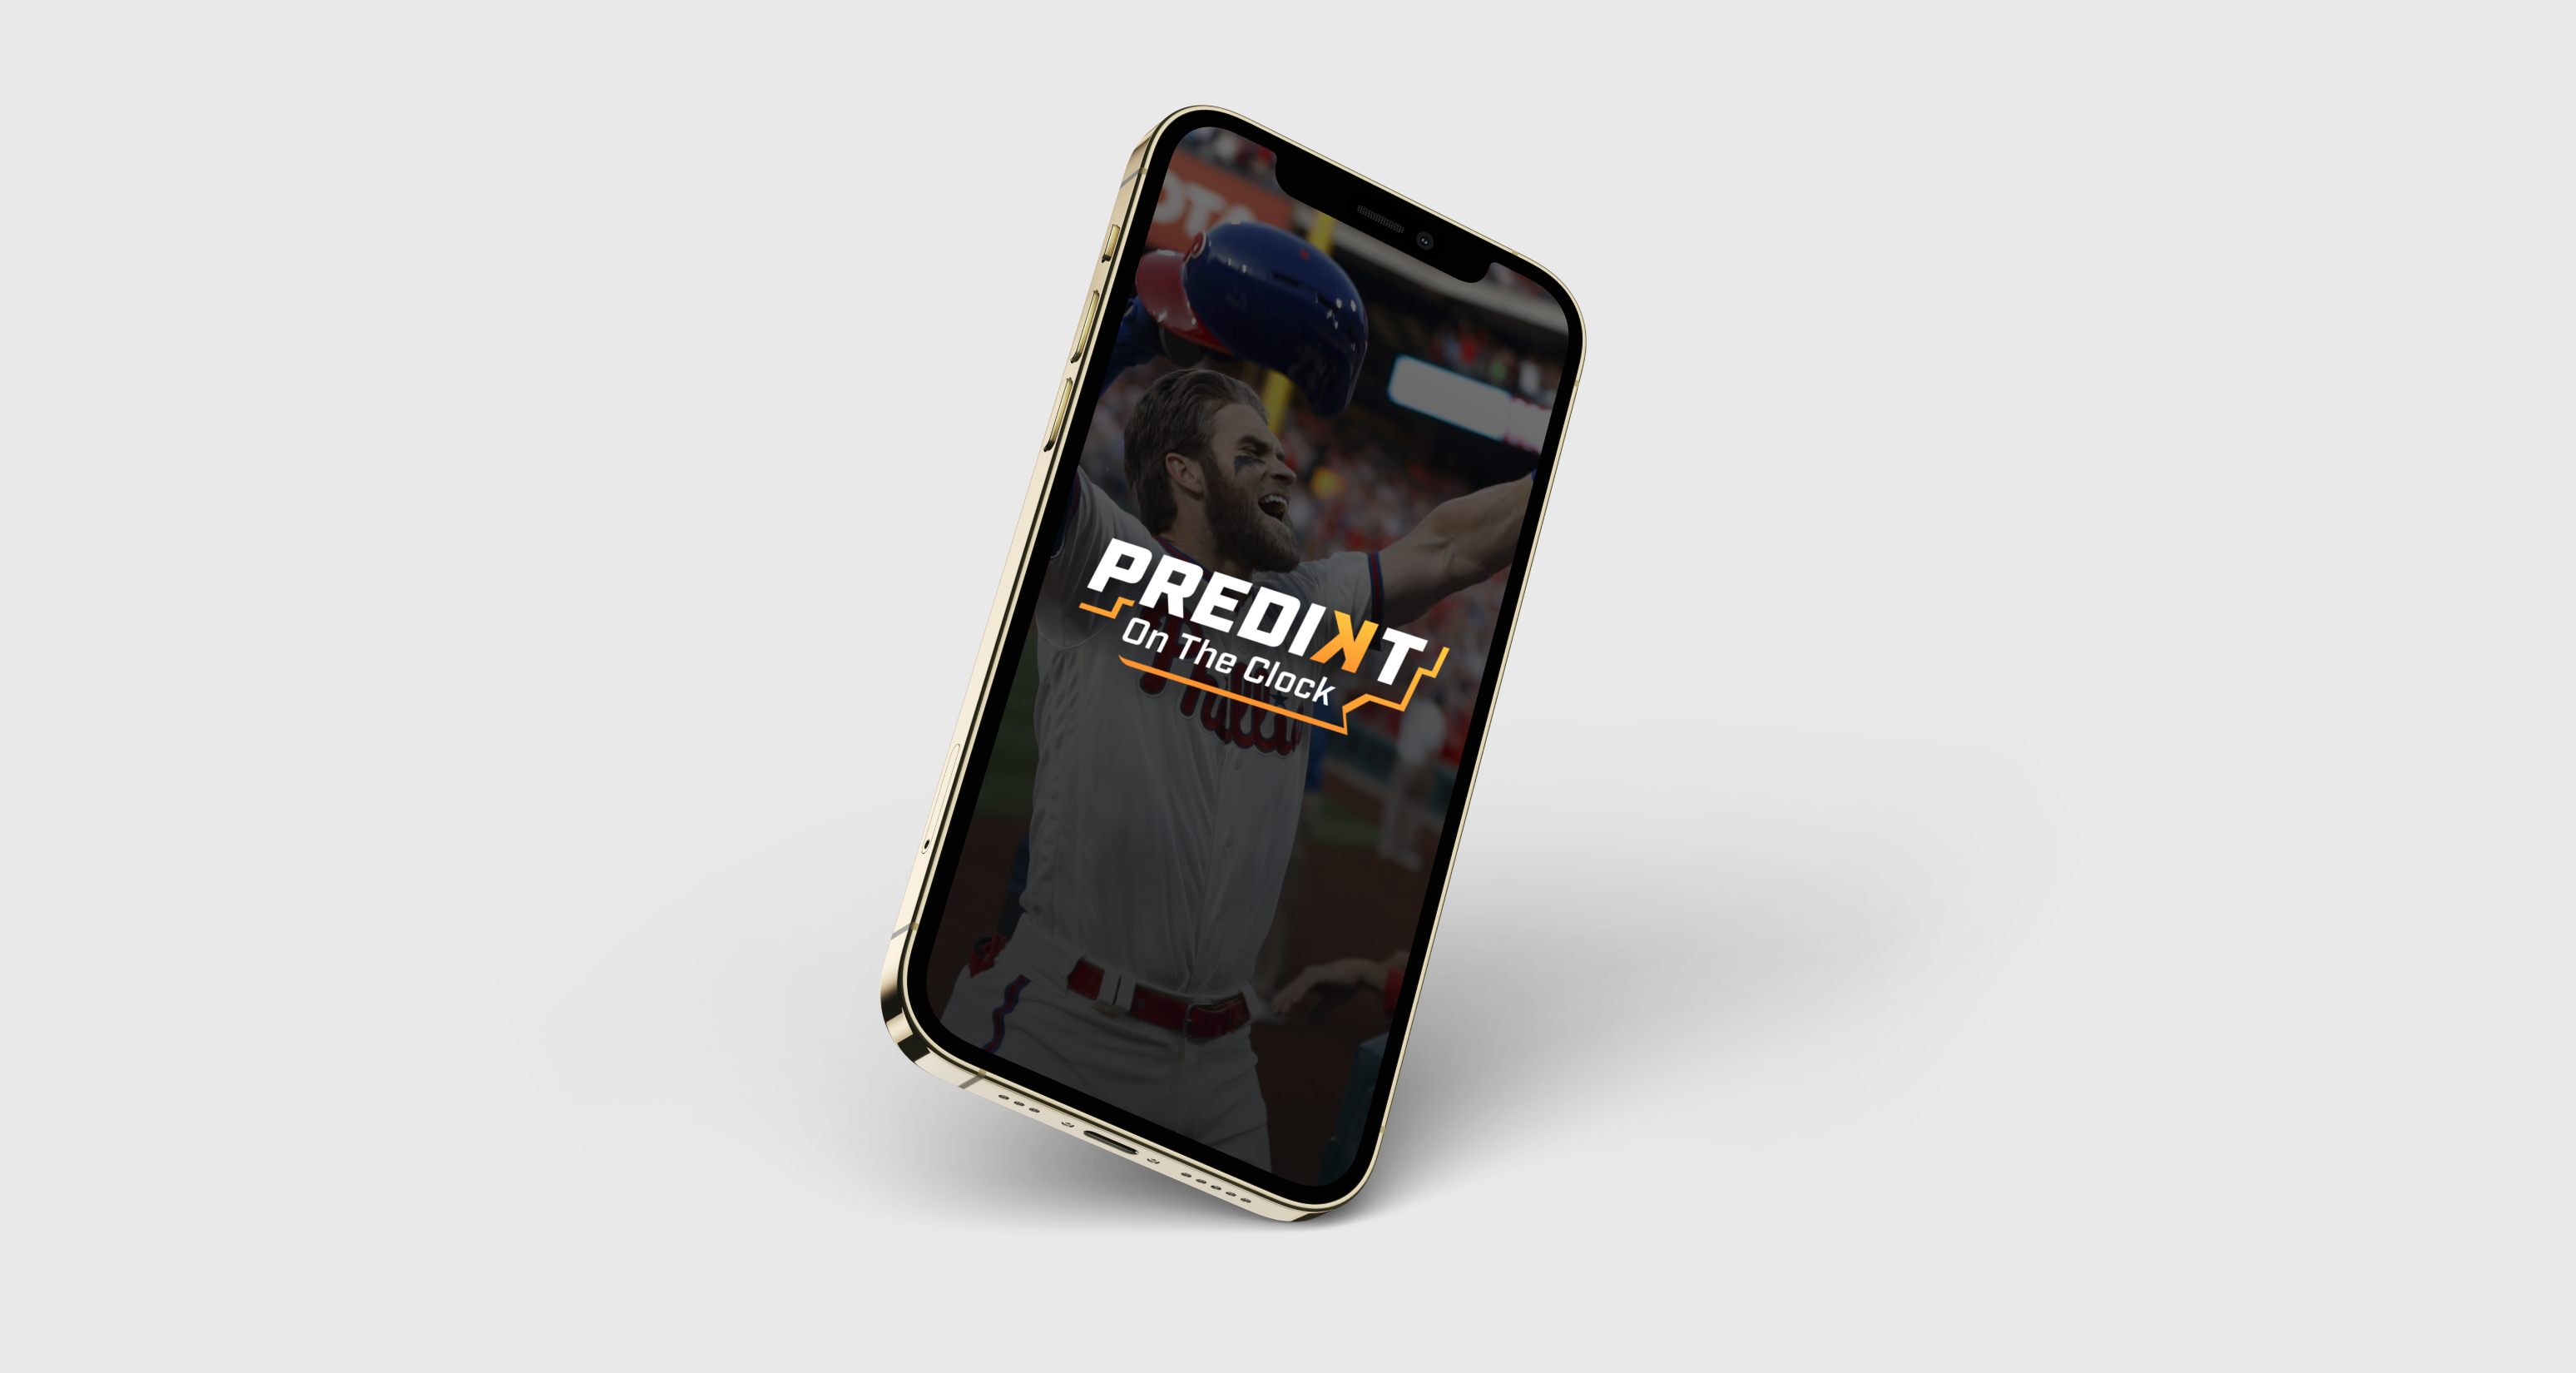 An image of Predikt's sleek design and robust user interface on their fast-paced sports betting app